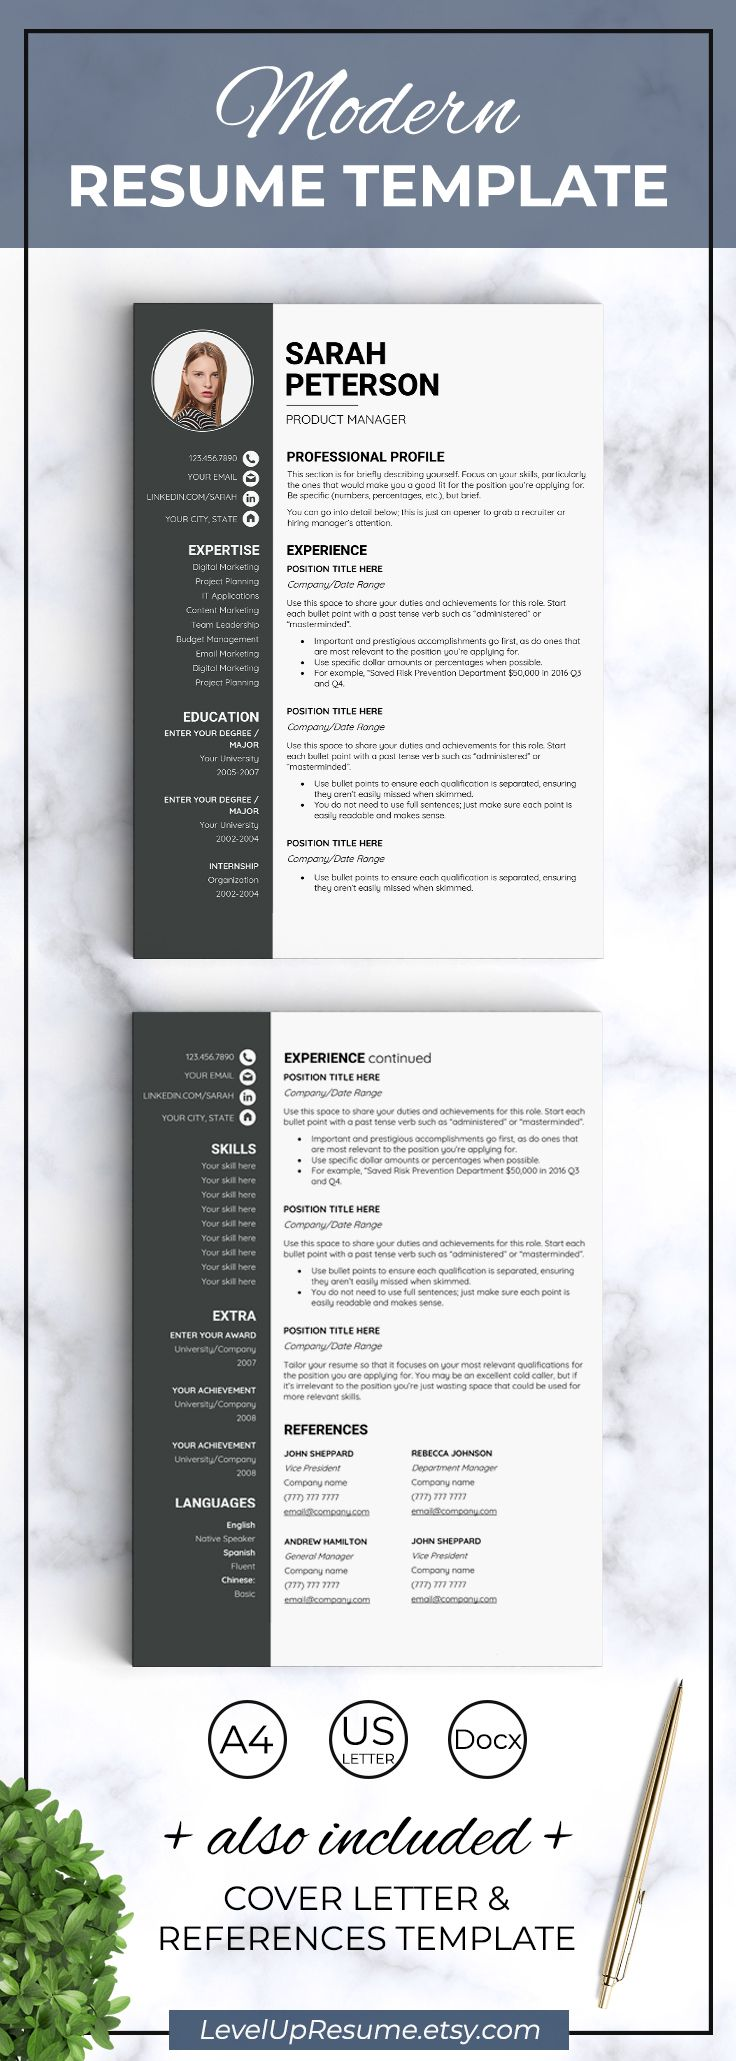 best 25  fashion resume ideas on pinterest